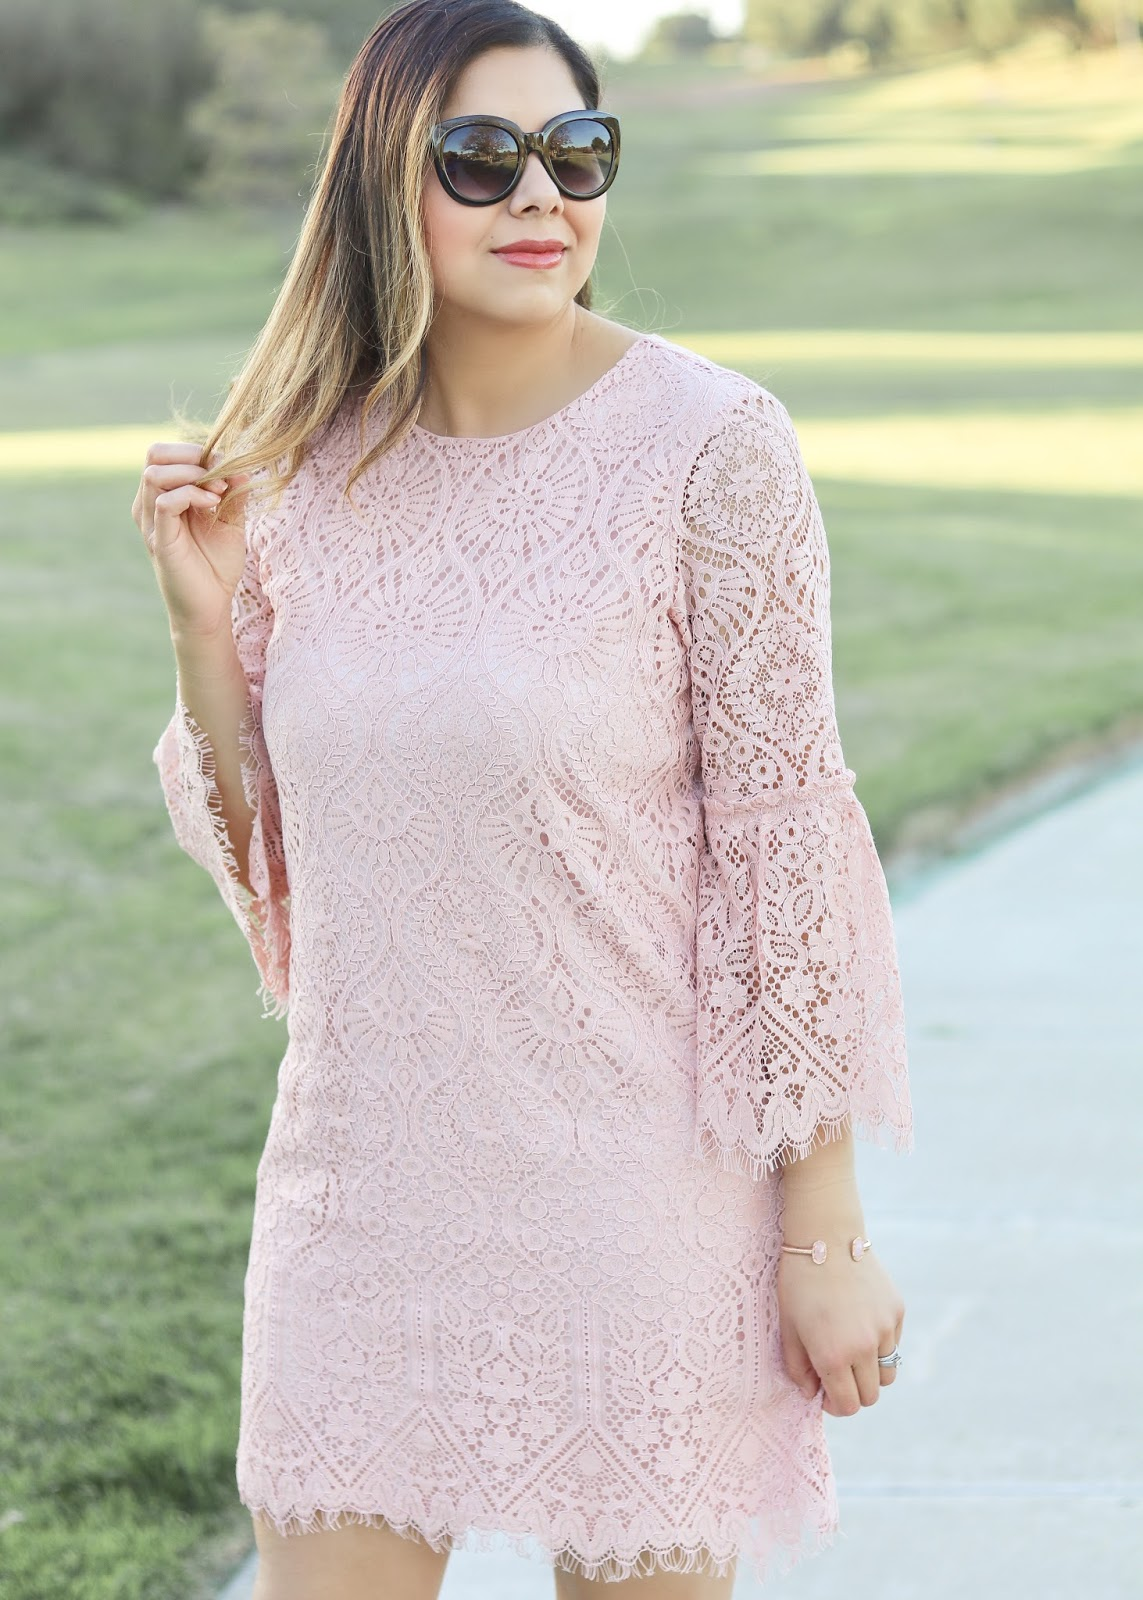 blush lace dress with sleeve details, kendra scott cuff